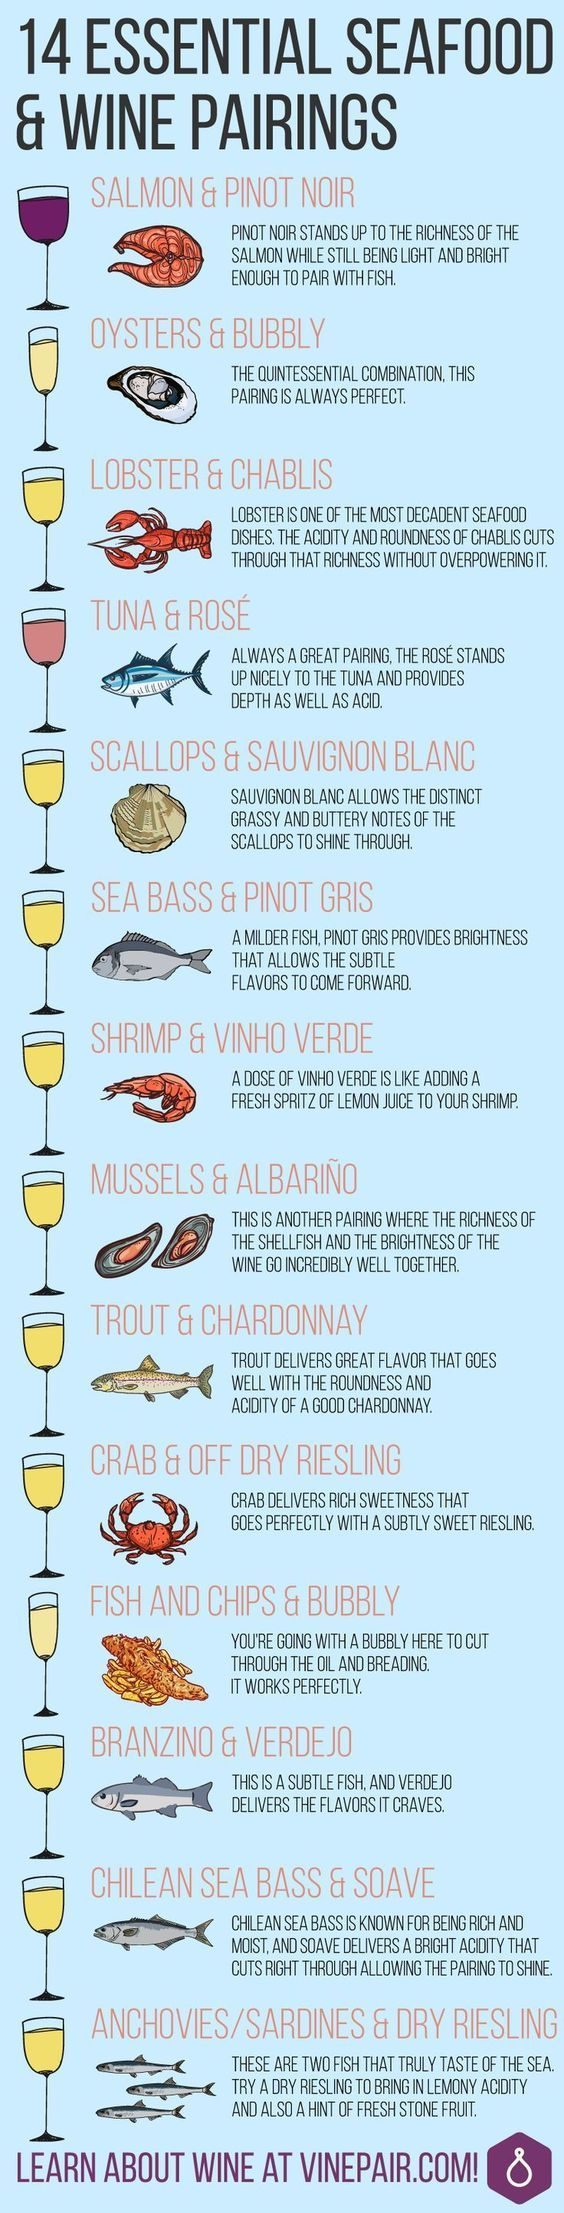 Get perfect wine pairings for 14 of the most popular seafood dishes, from fish and lobster, to crabs and other shellfish. See the infographic now!: